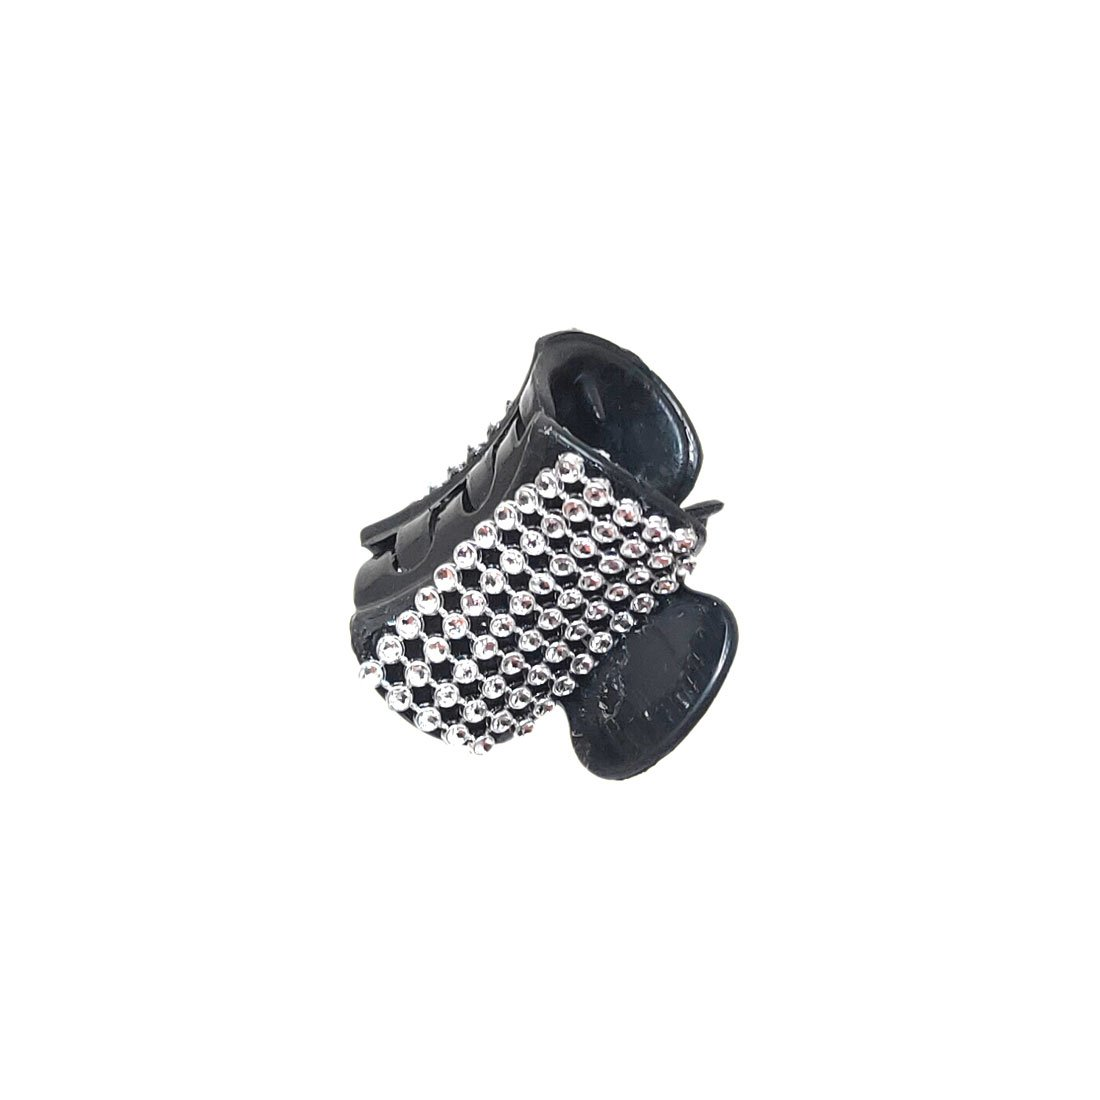 Anokhi Ada Black Designer Handmade Fancy Plastic Hair Clutcher for Girls and Women (ZL-02) - Anokhiada.com